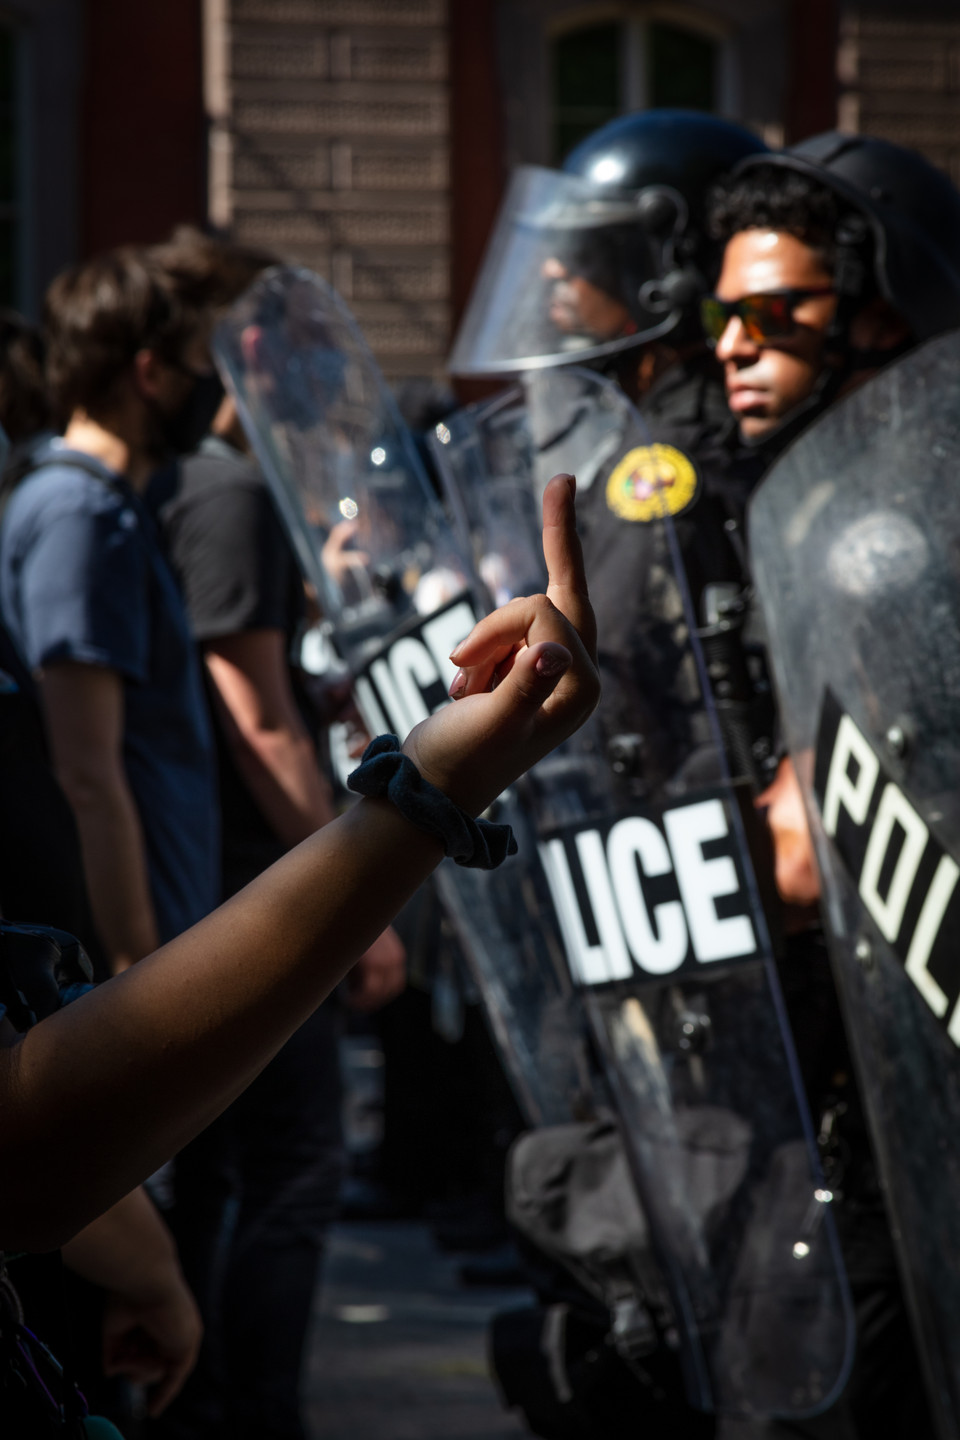 A protester gives the middle finger to a row of police officers in front of the White House in Washington, D.C., May 30, 2020.